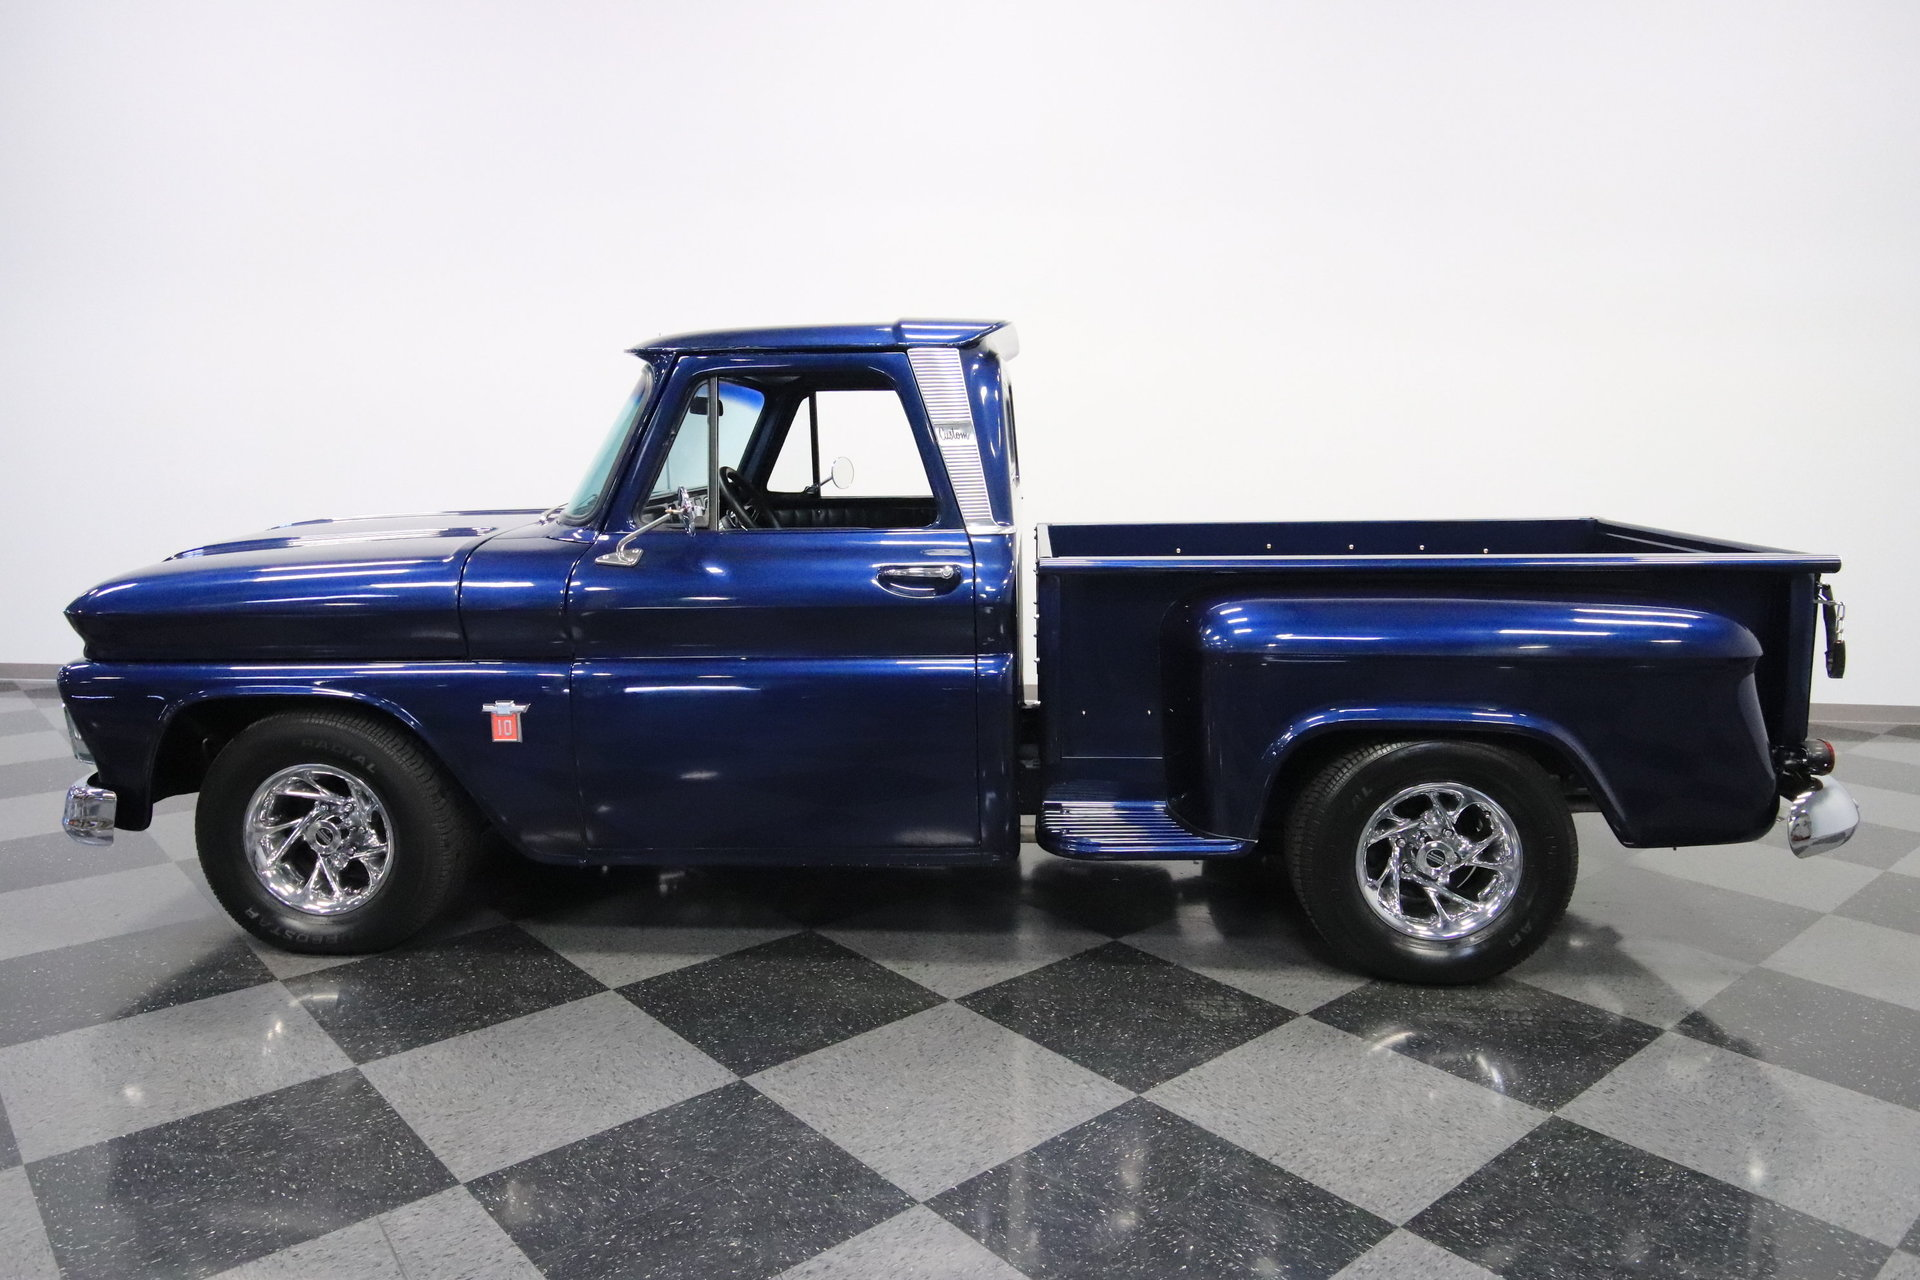 1964 Chevrolet C10 Streetside Classics The Nations Trusted Chevy Truck Gas Tank Show More Photos